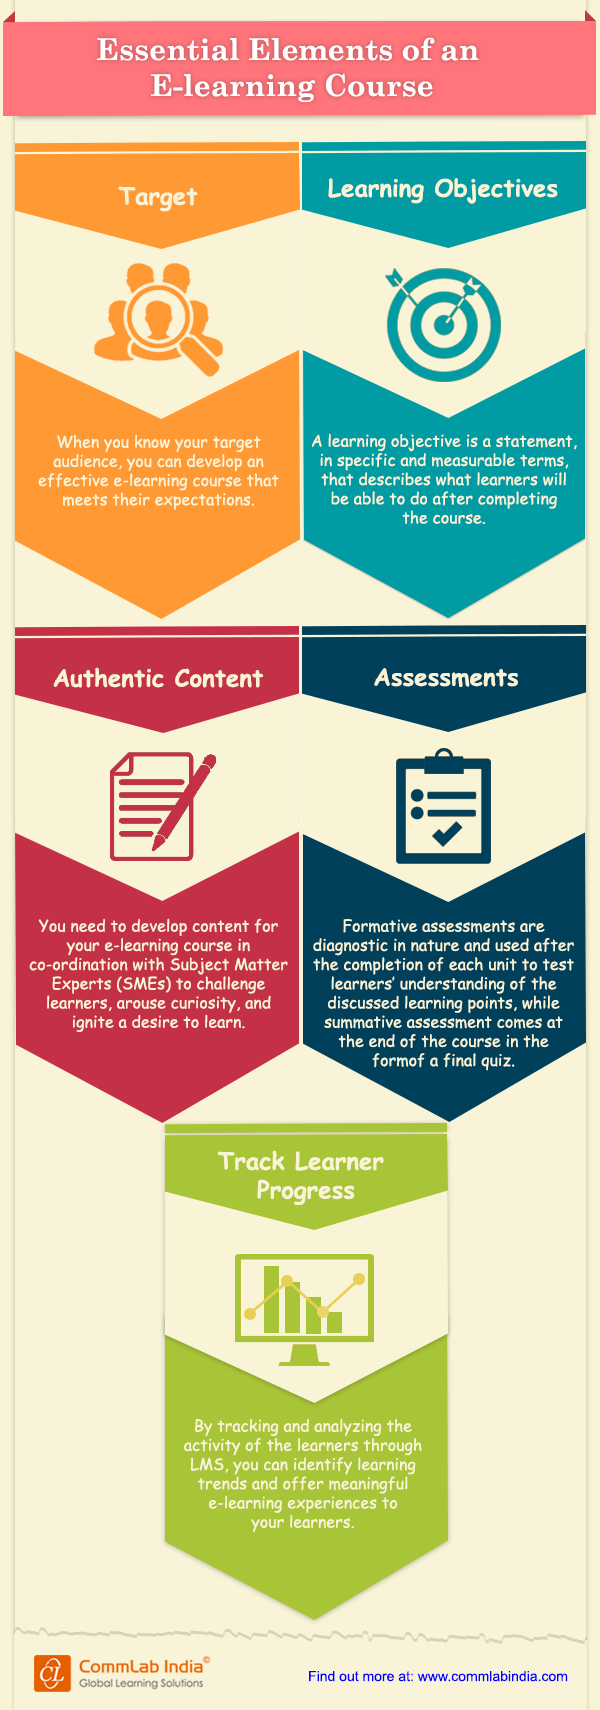 Essential Elements of an E-learning Course [Infographic]